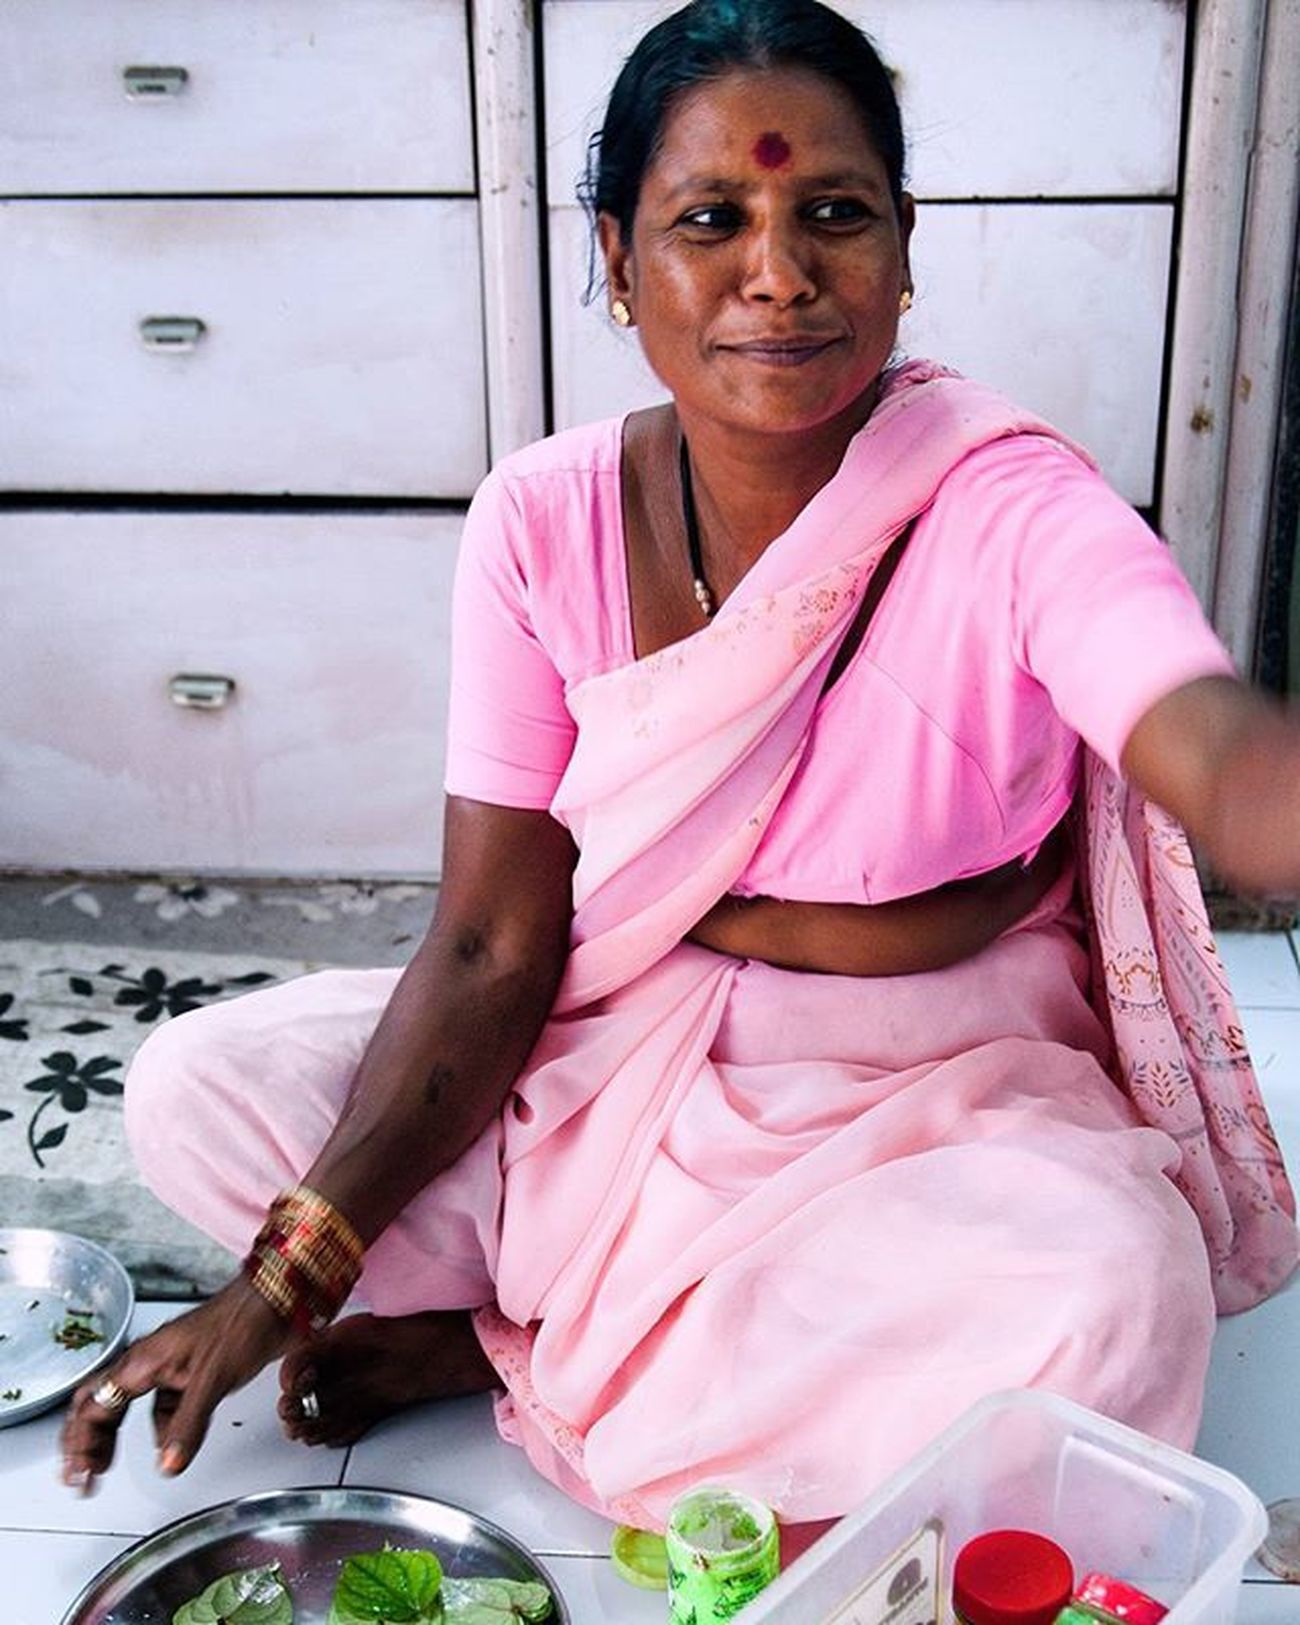 The house helper at my grandmother's house in Aurangabad, India, smiles as she hands my mom the first paan. The paan leaf (betel leaf) is filled in with a combination of sweets and spices, and is chewed to freshen your mouth. Paan Notpan Sweet India Helpinghands Smiles Green Meethapaan Sadhapaan Betelleaf Indiantradition Freshness Cleanser Instagood Instapic Lfl Follow Ztprod